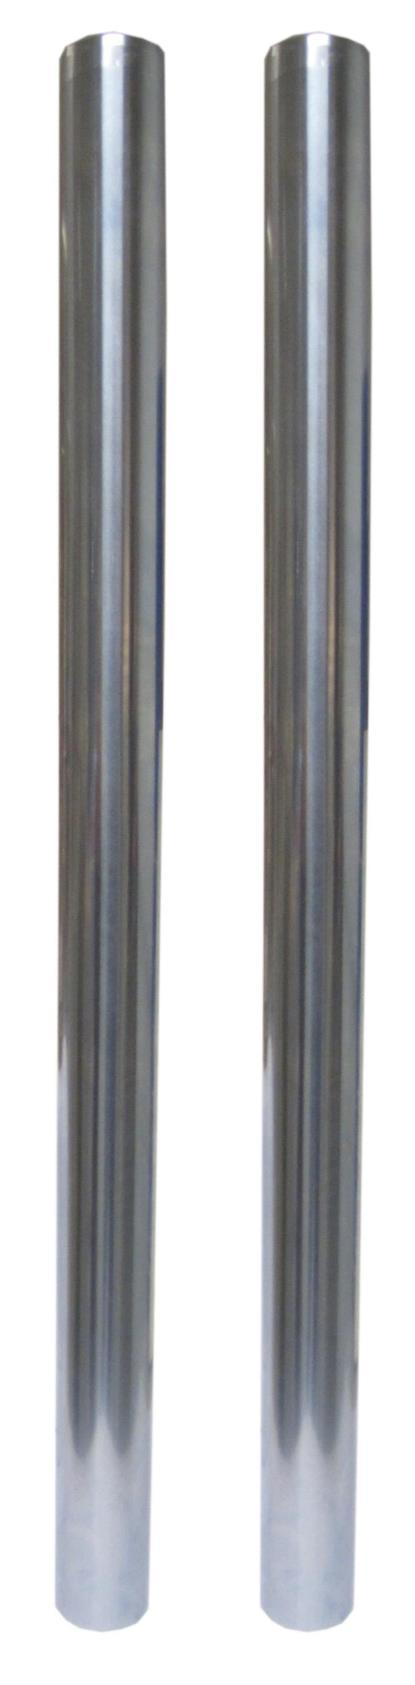 Picture of Front Fork Stanchions Only Ka wasaki Z1, Z1A, Z1B 73-75 36mm (Pair)